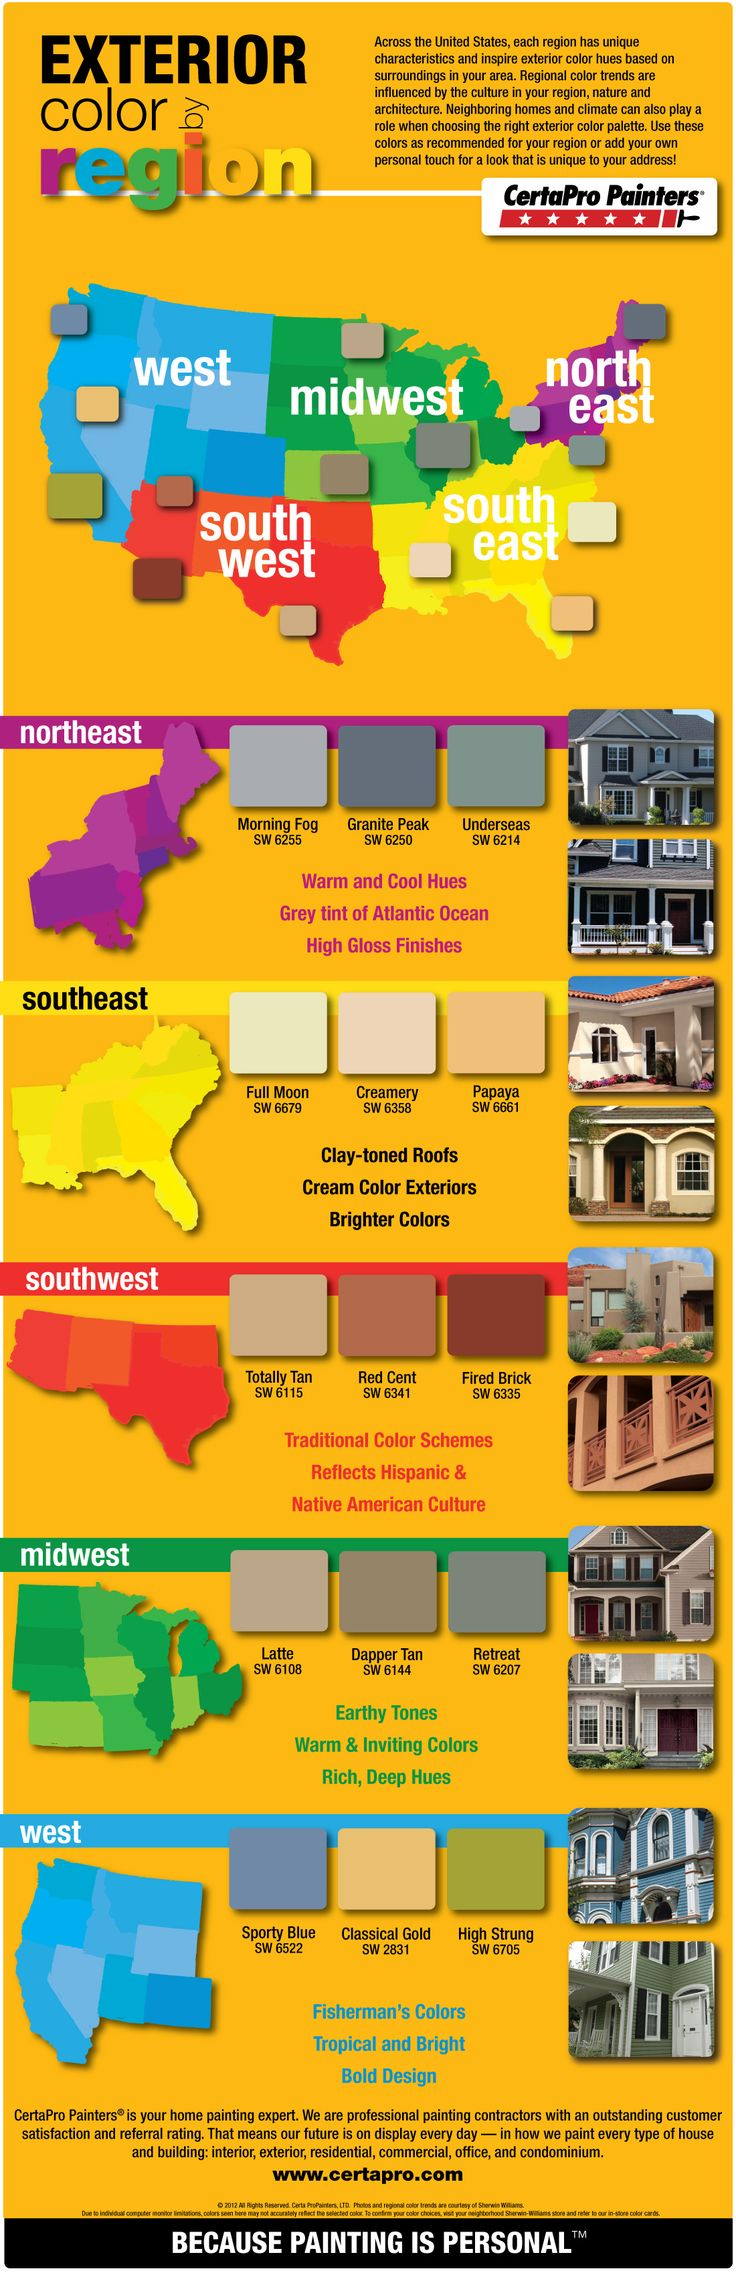 EXTERIOR COLOR BY REGION! from CertaPro Painters®